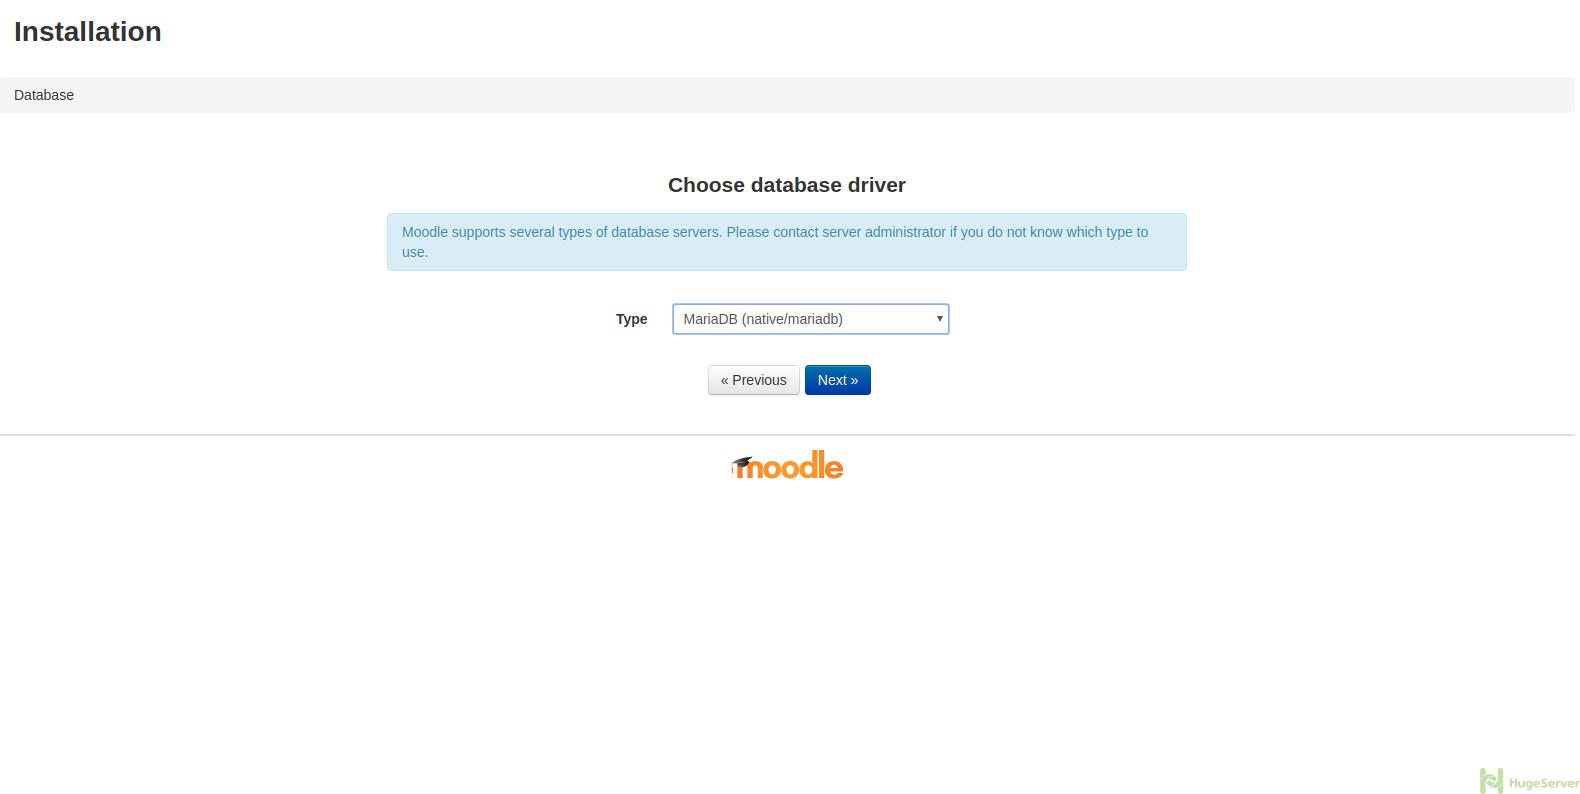 Moodle Setup: Choose Database Driver